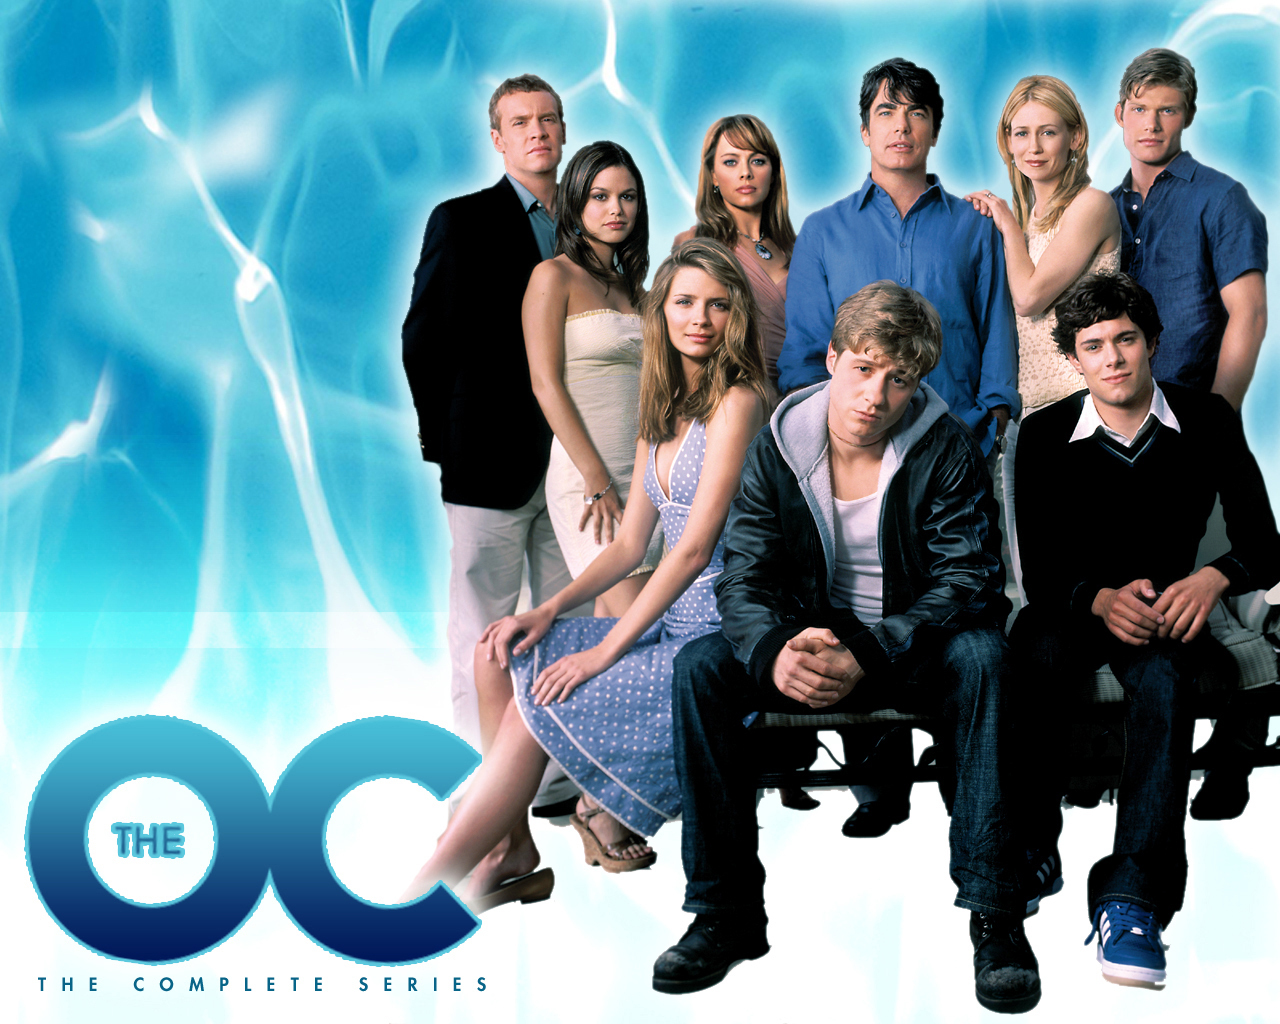 The oc cast one tree hill and the oc 5322093 1280 1024